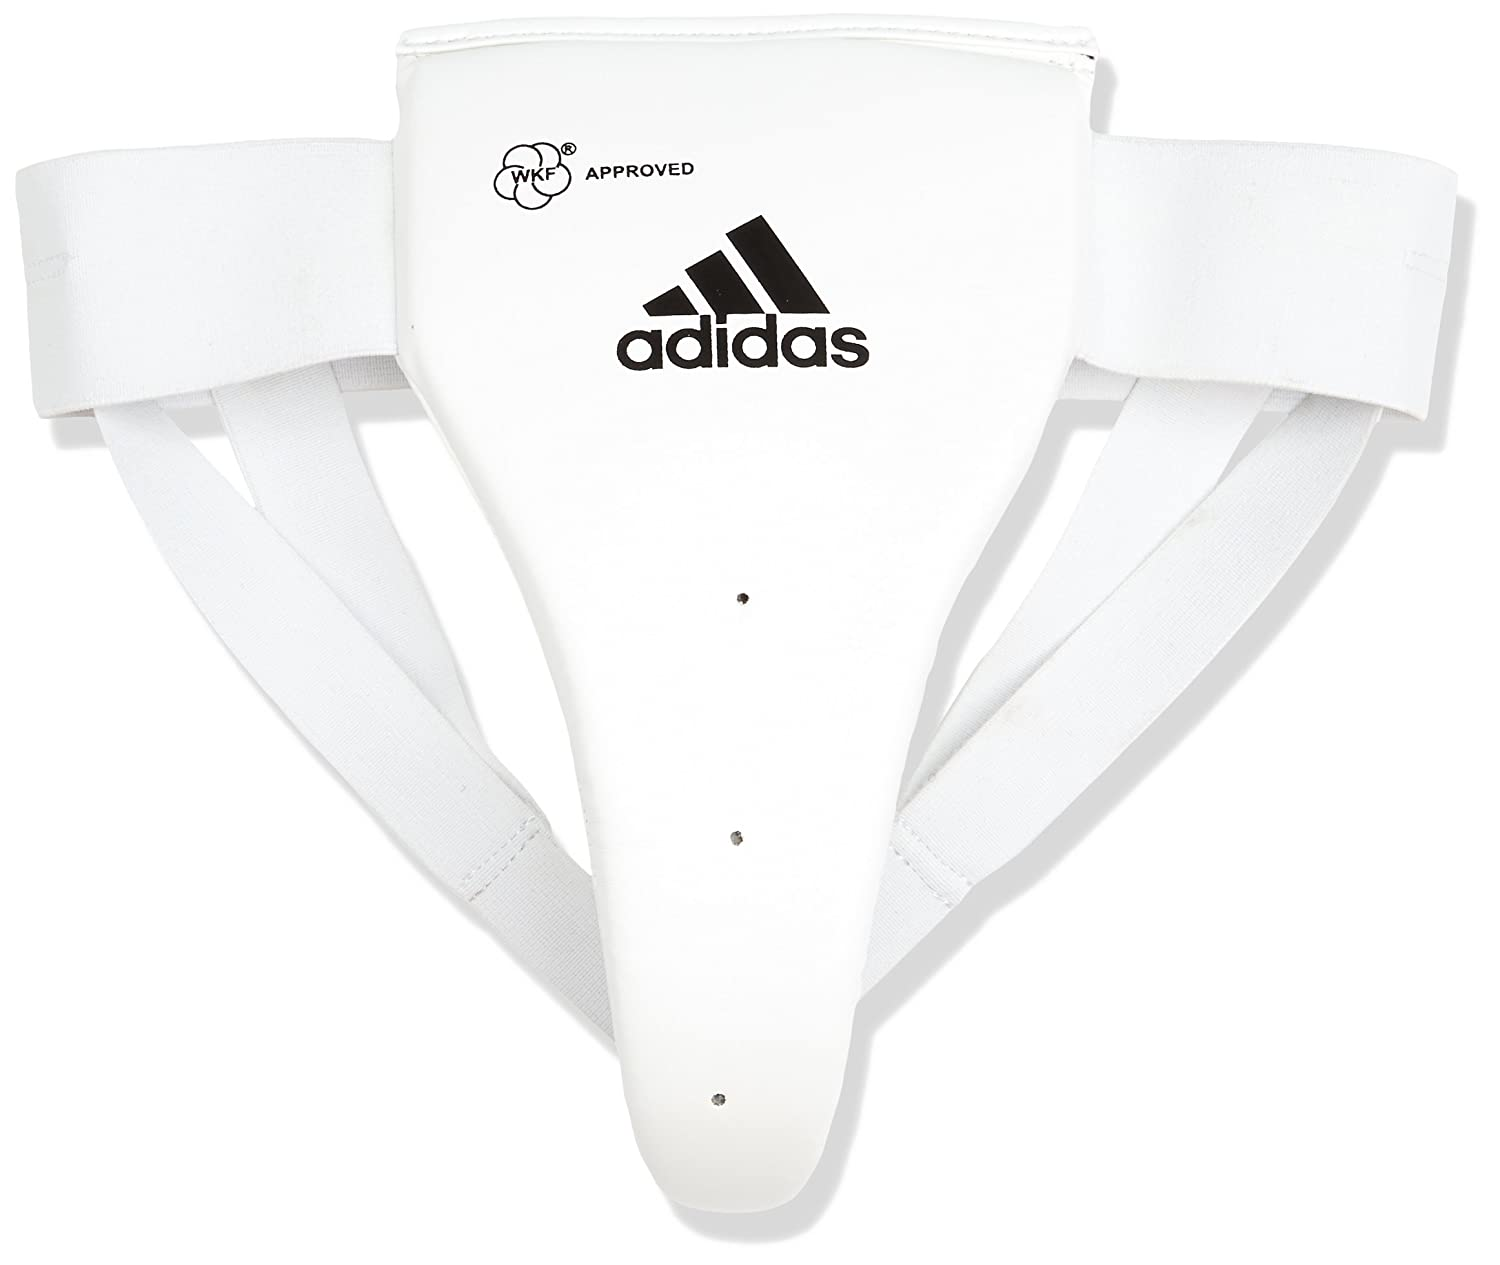 Female Groin Cup - adidas Women WKF Boxing Groin Guard Protector